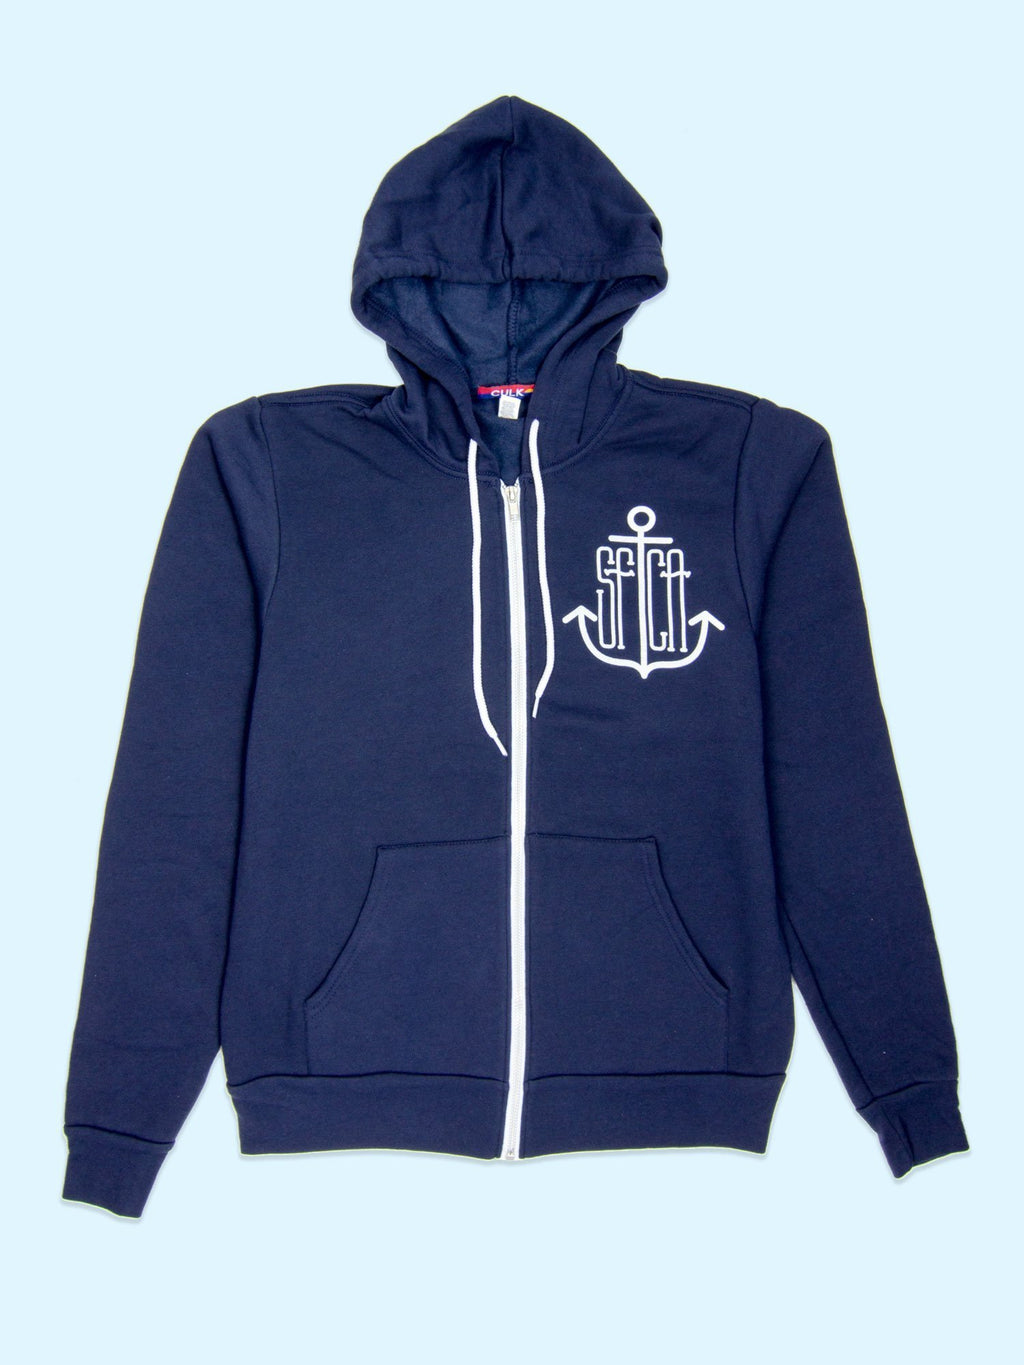 SF Anchor Unisex Zip-up Hoody Navy-Culk